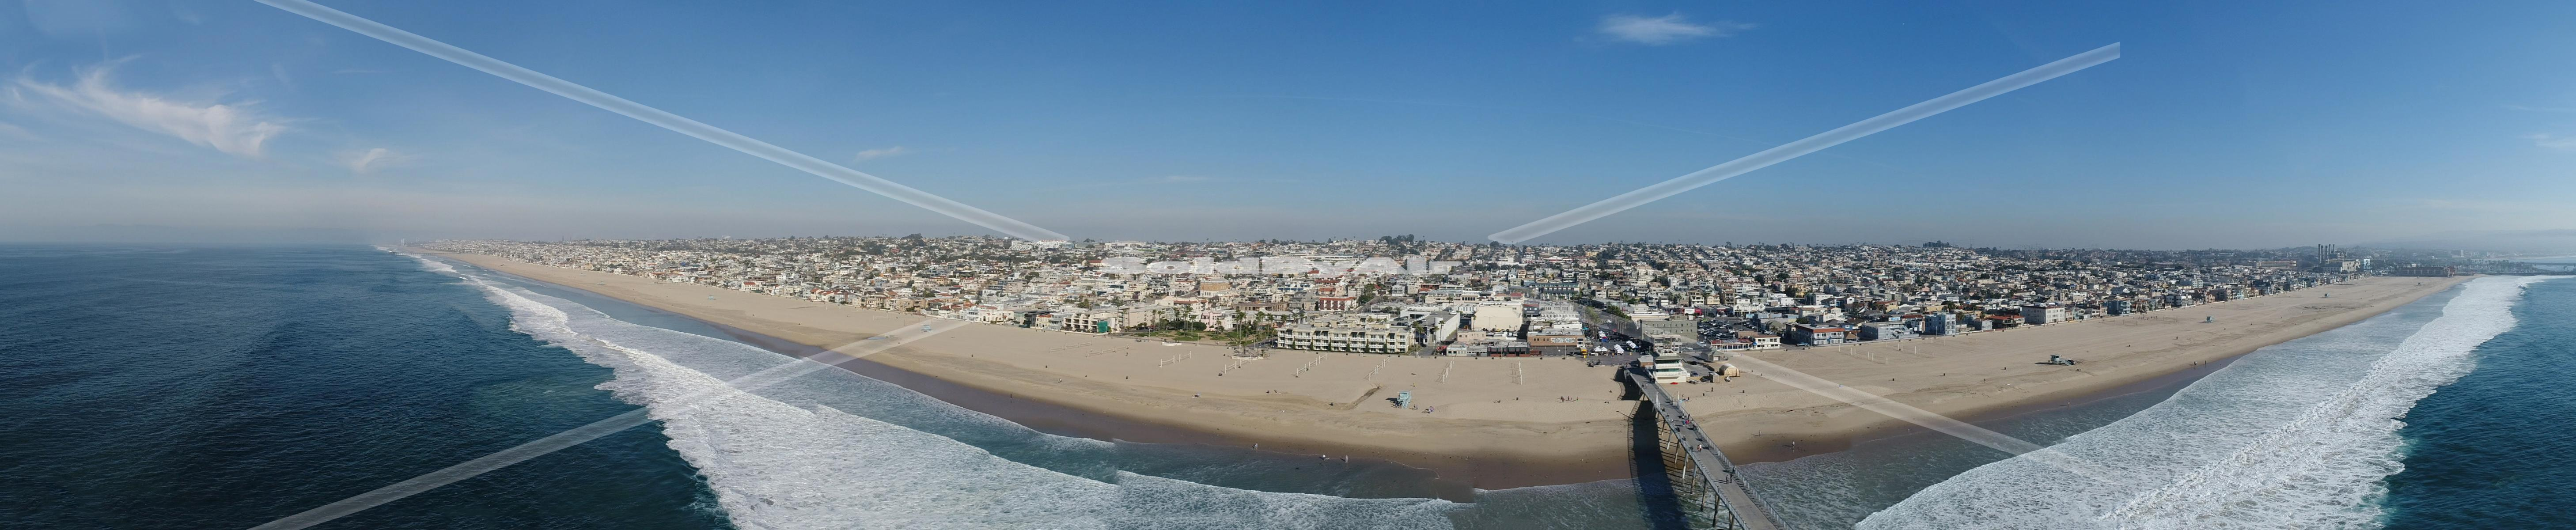 Drone Photo of Aerial Panorama in Hermosa Beach California